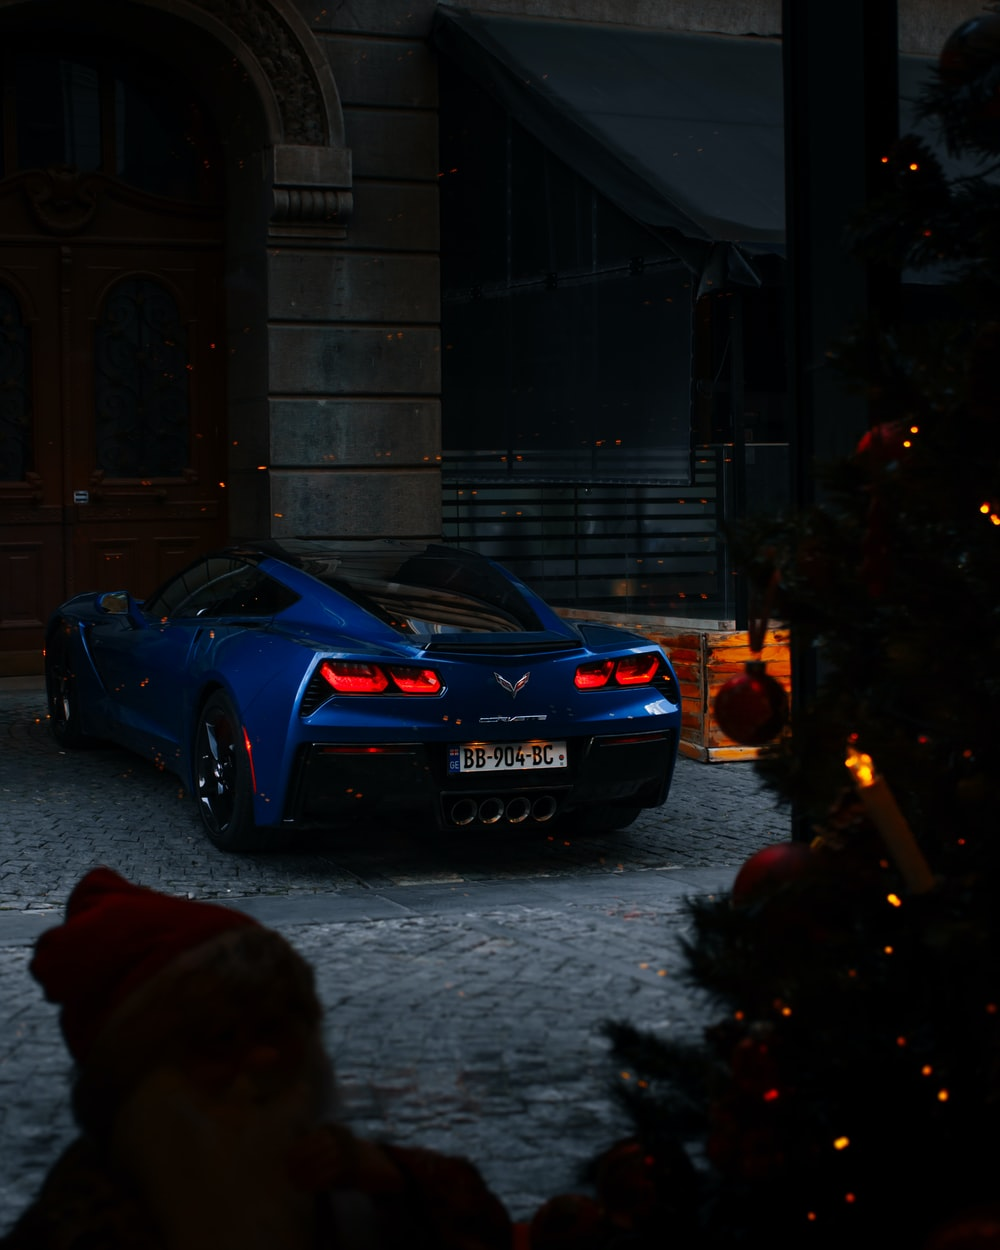 blue bmw m 3 parked on street during nighttime